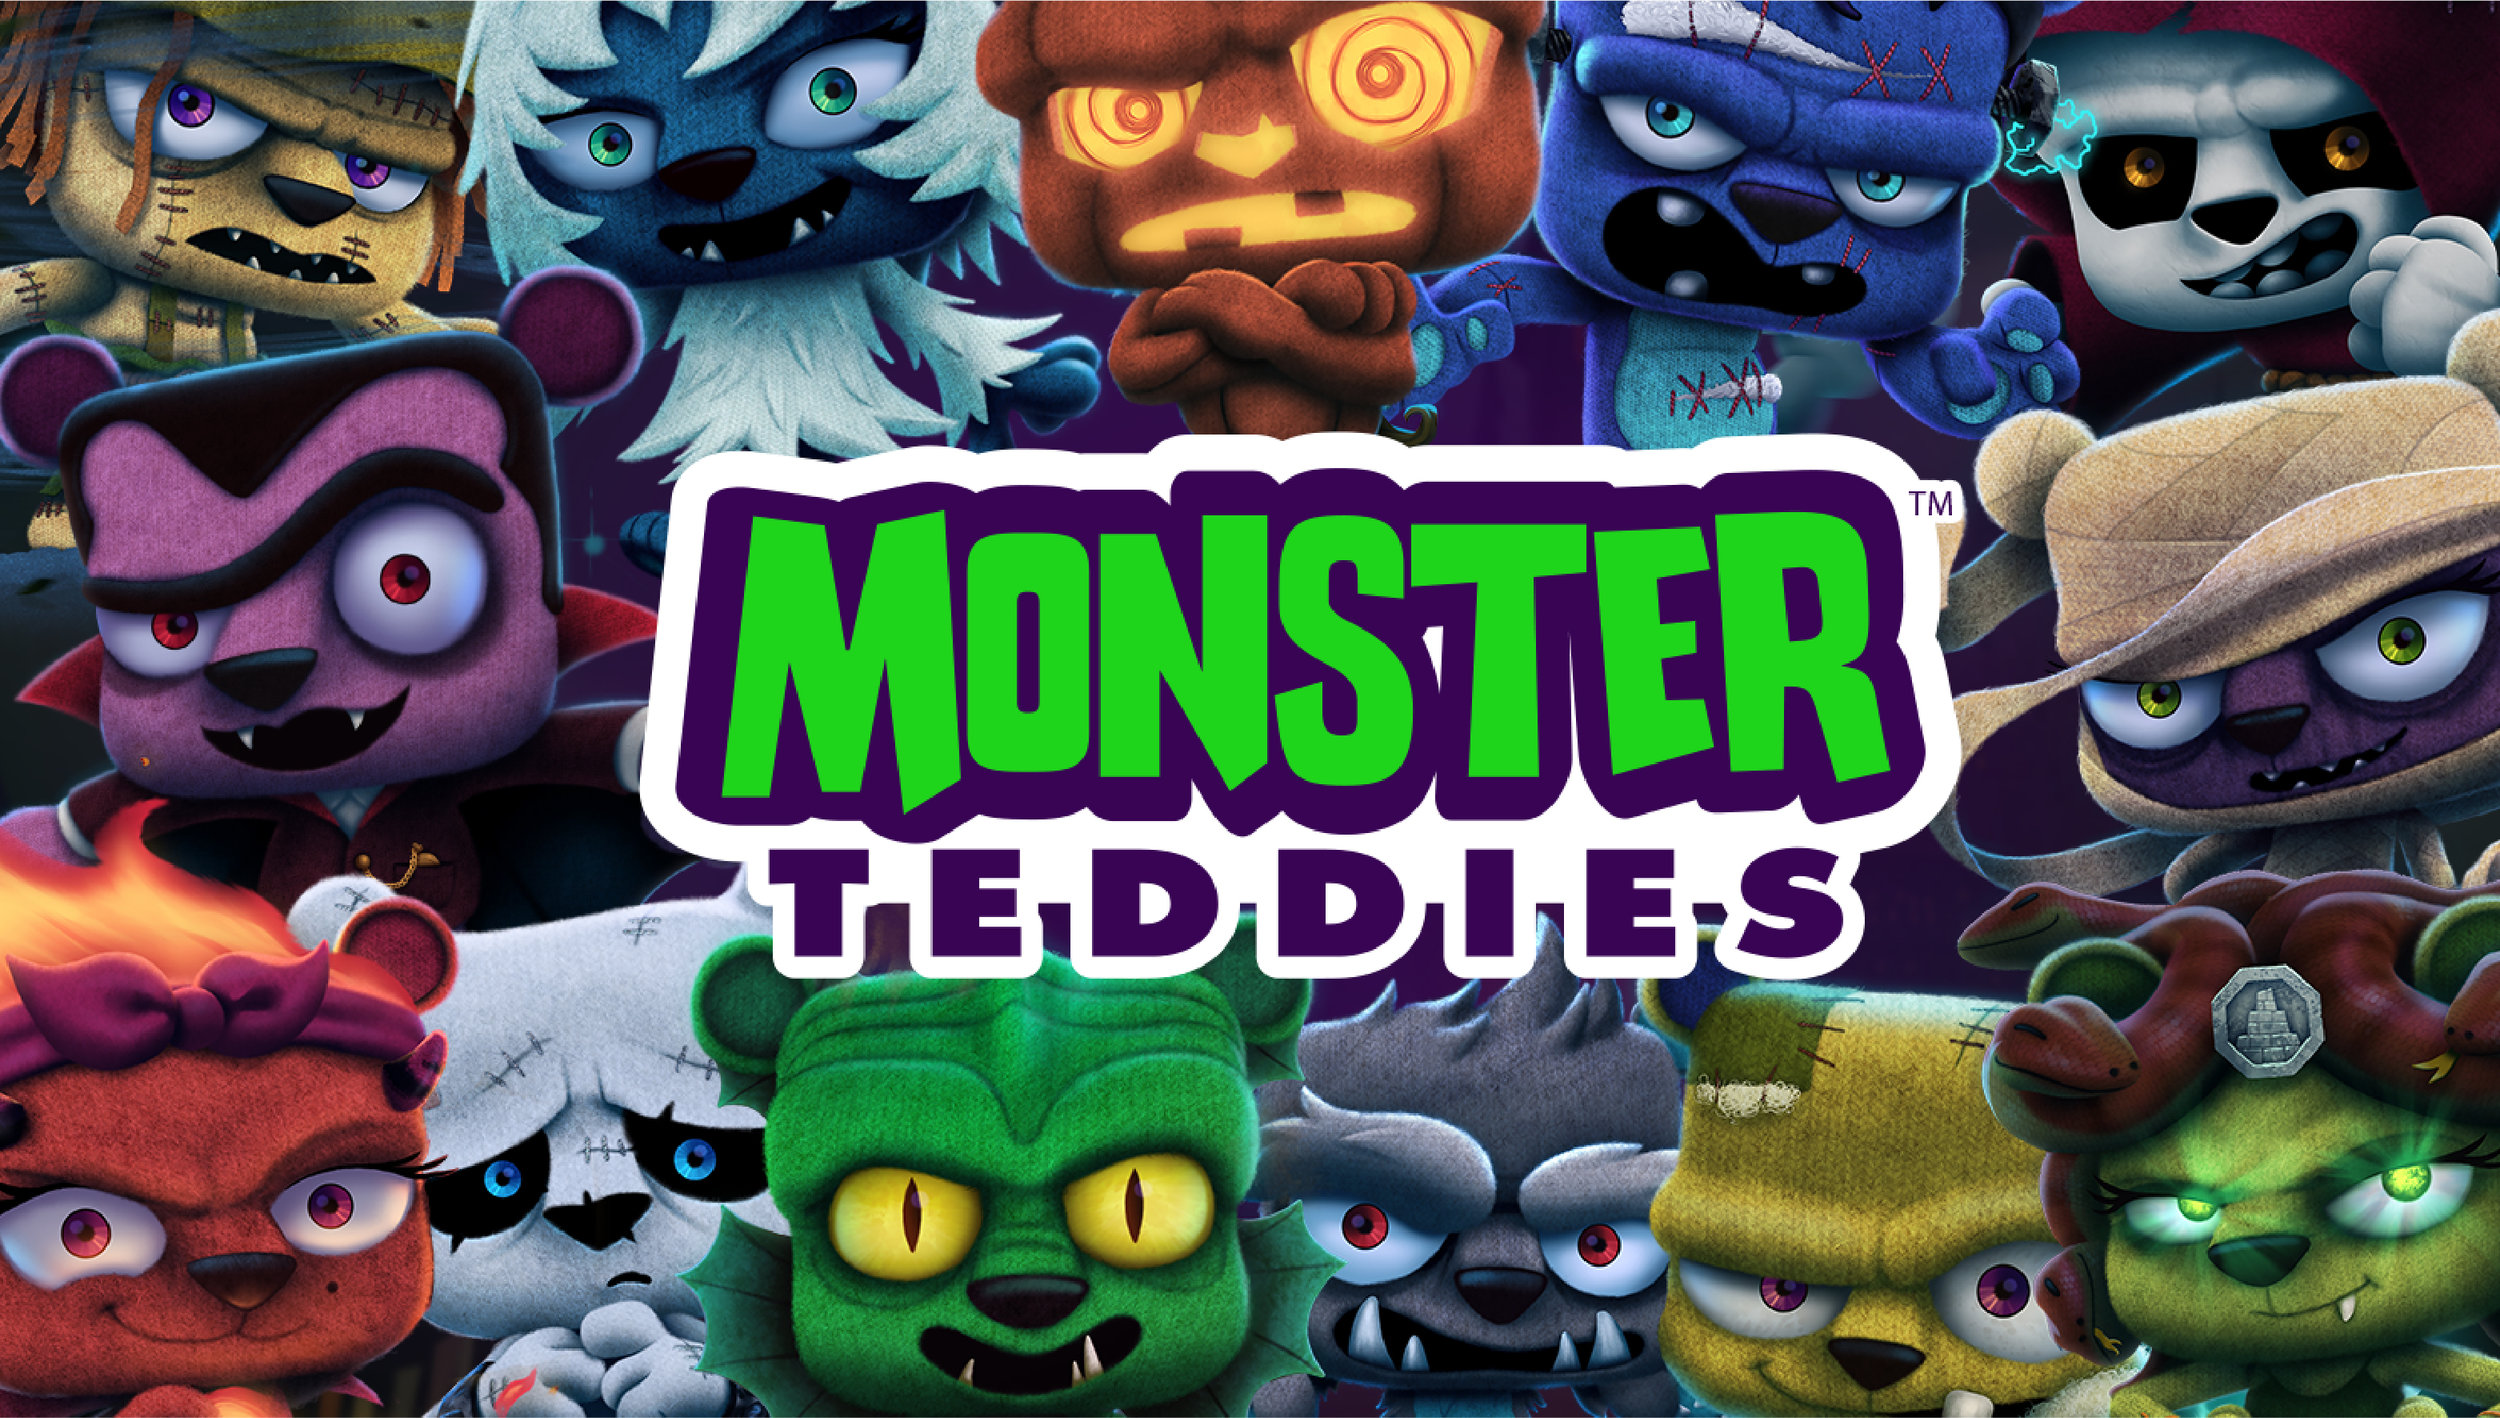 CentaIP_Homepage-MonsterTeddies.jpg